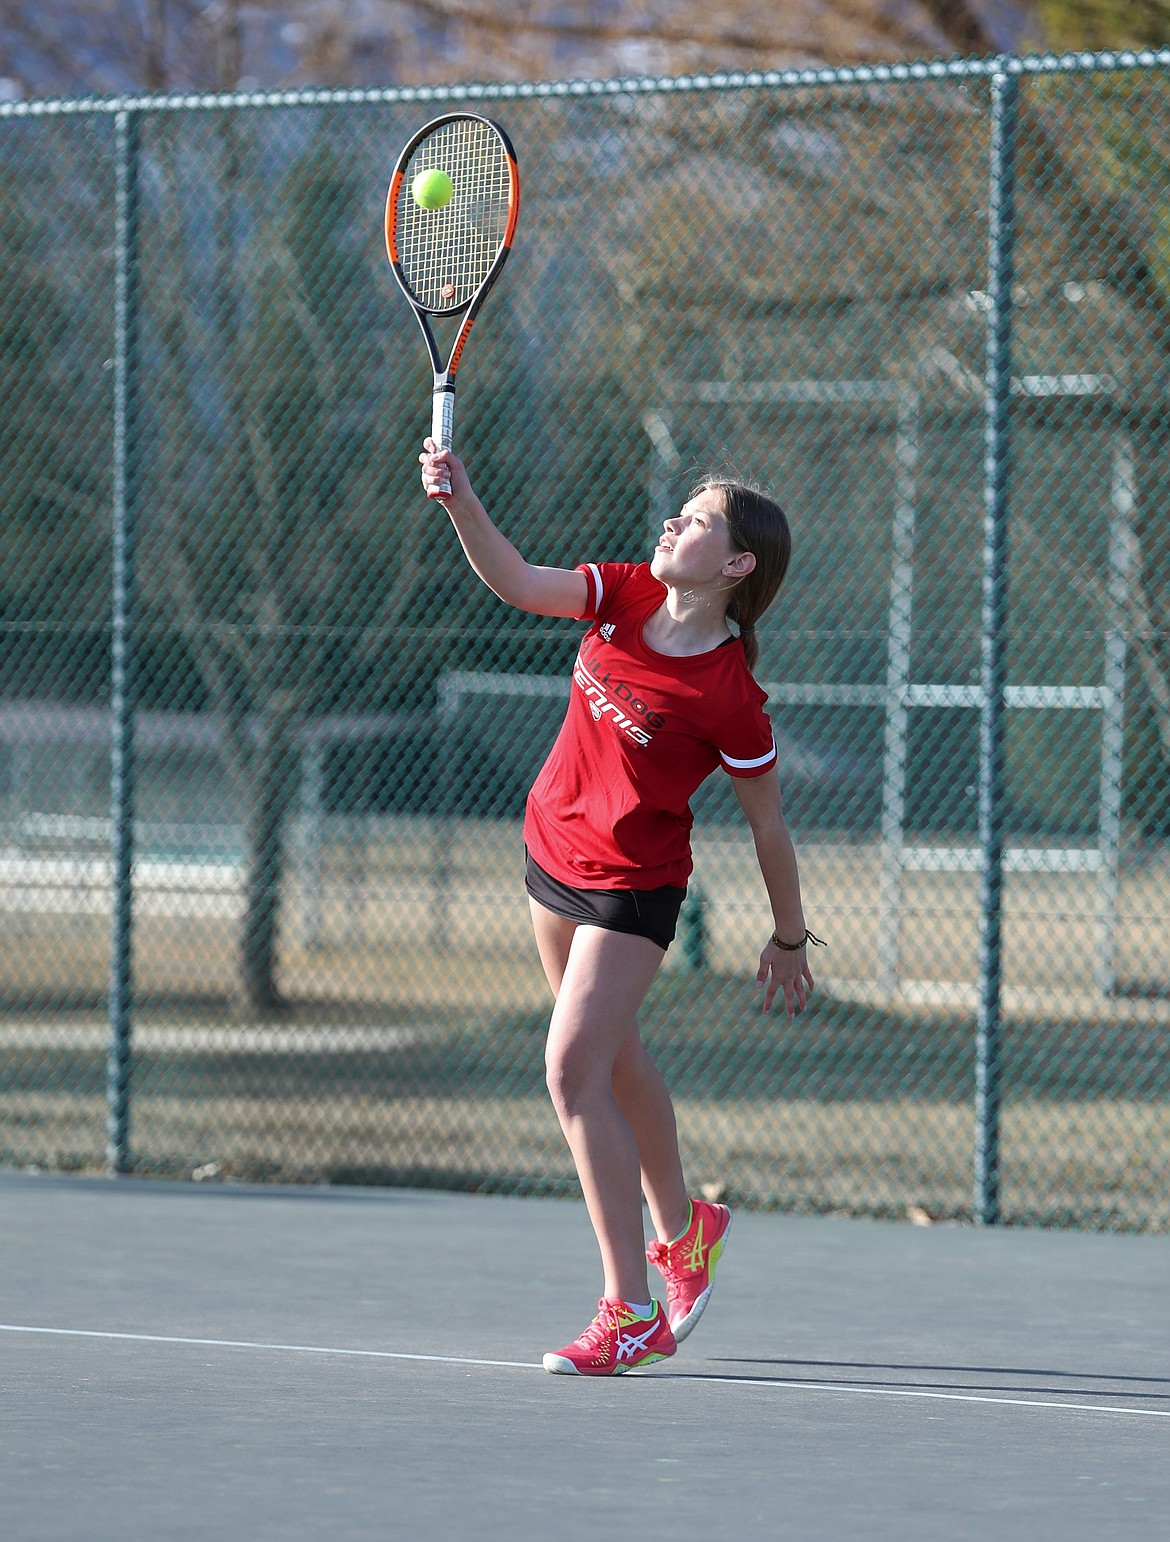 Maile Evans serves on Wednesday.